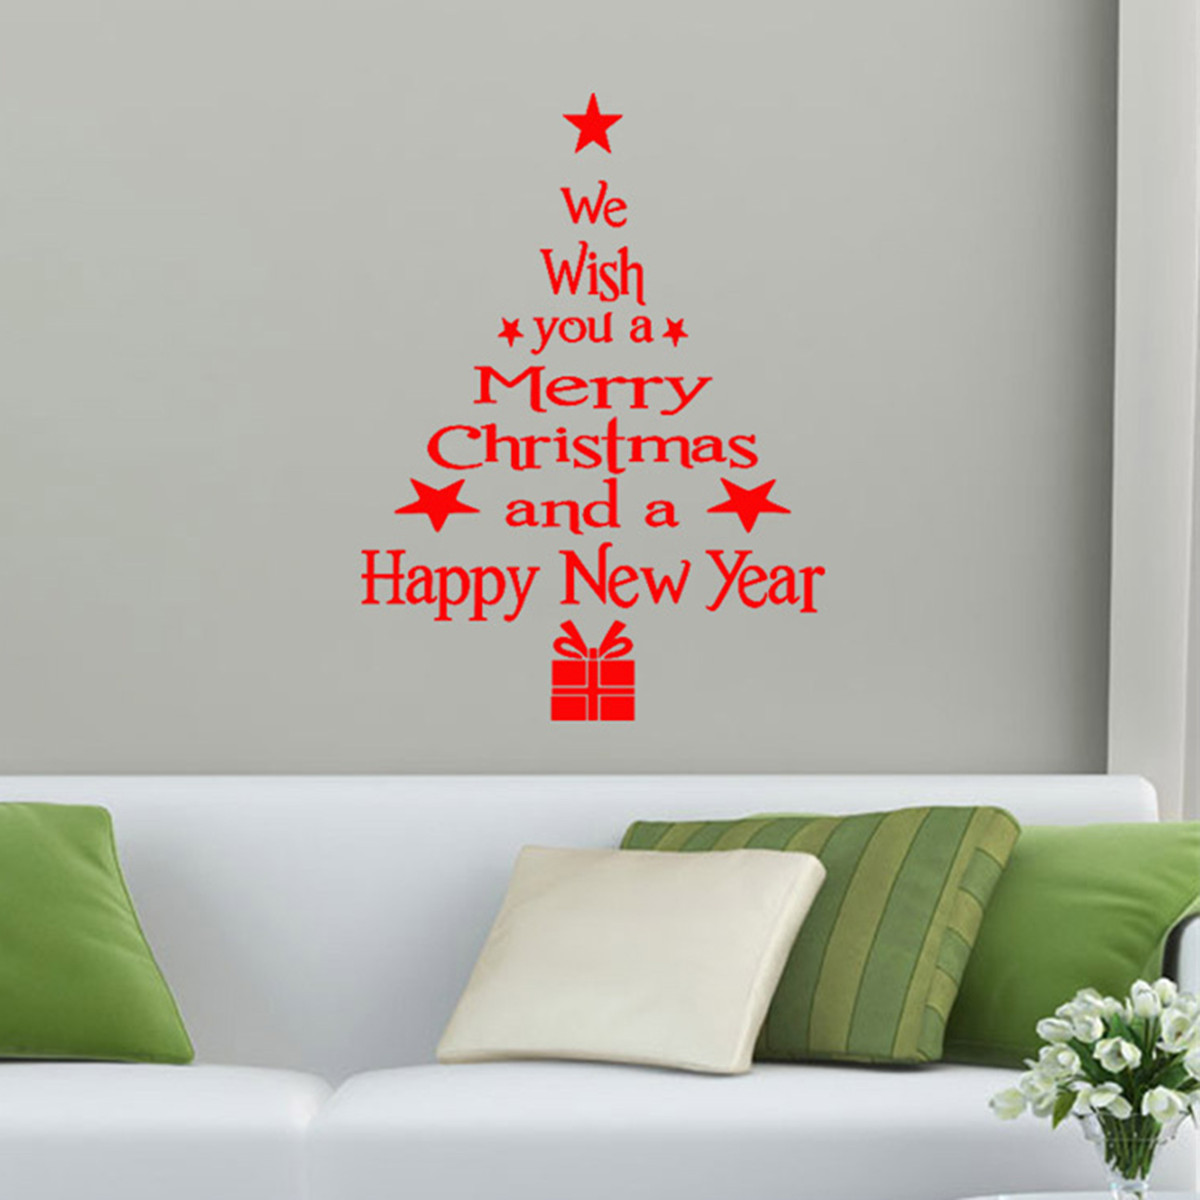 Removable Merry Christmas Tree Wall Window Sticker Home Party Decoration